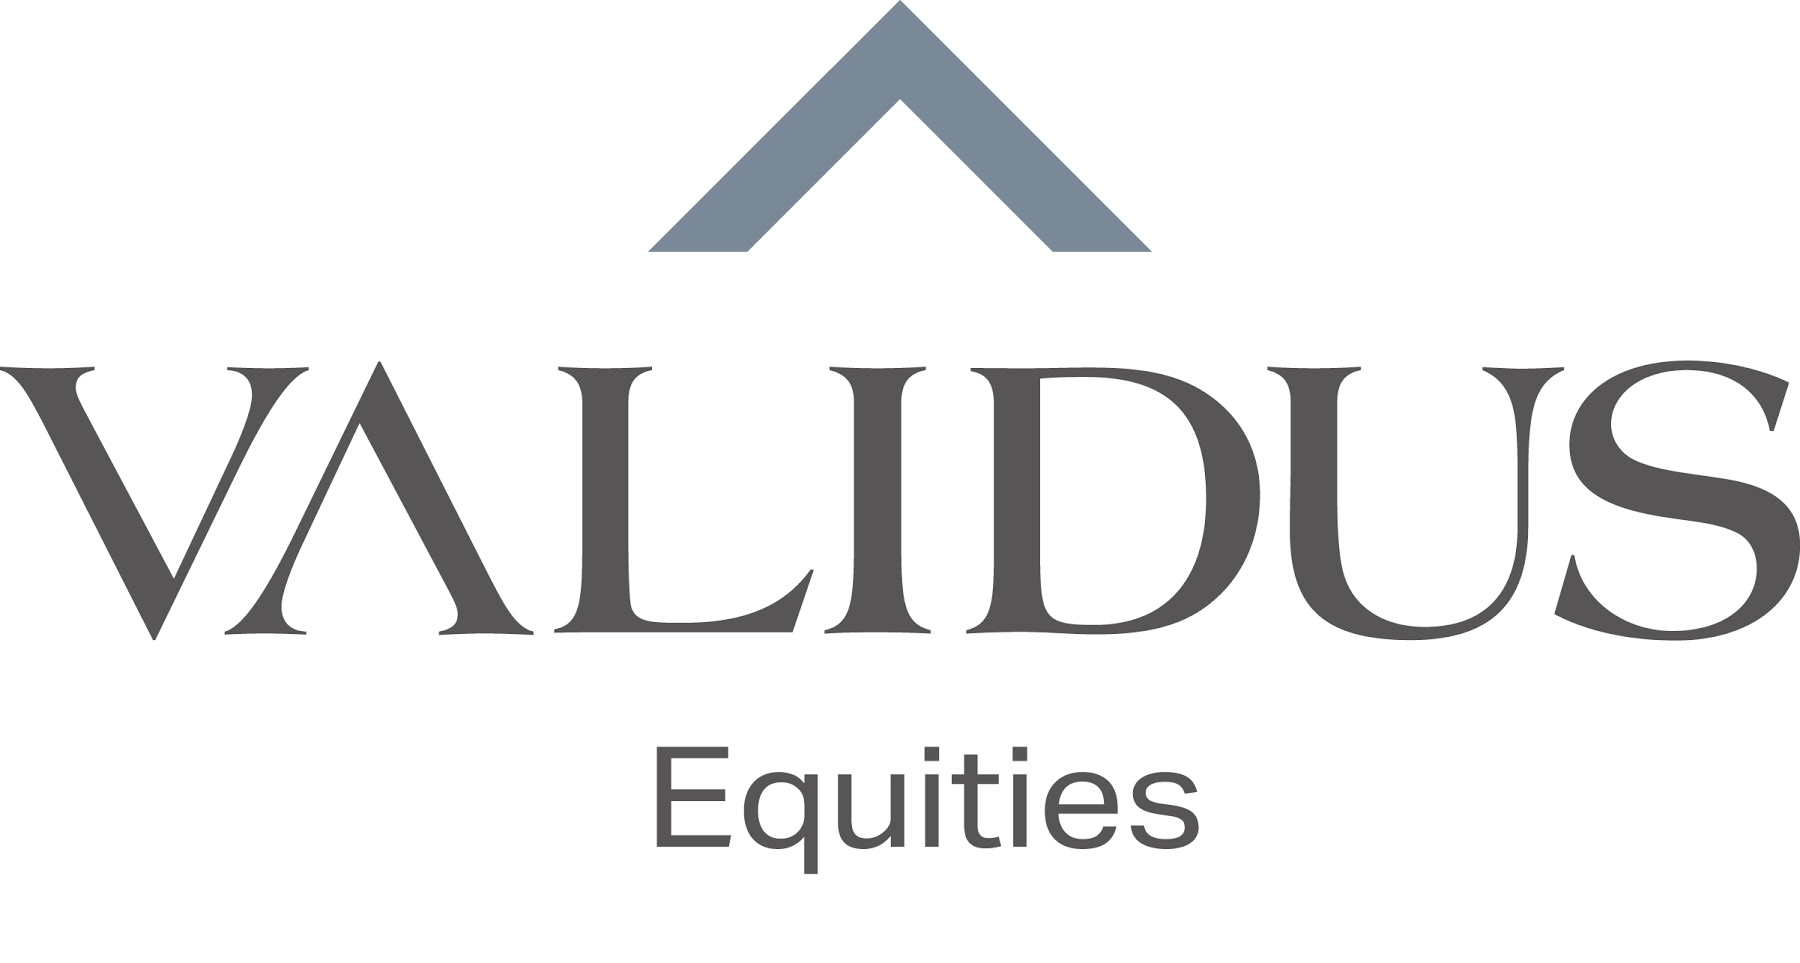 Validus Equities